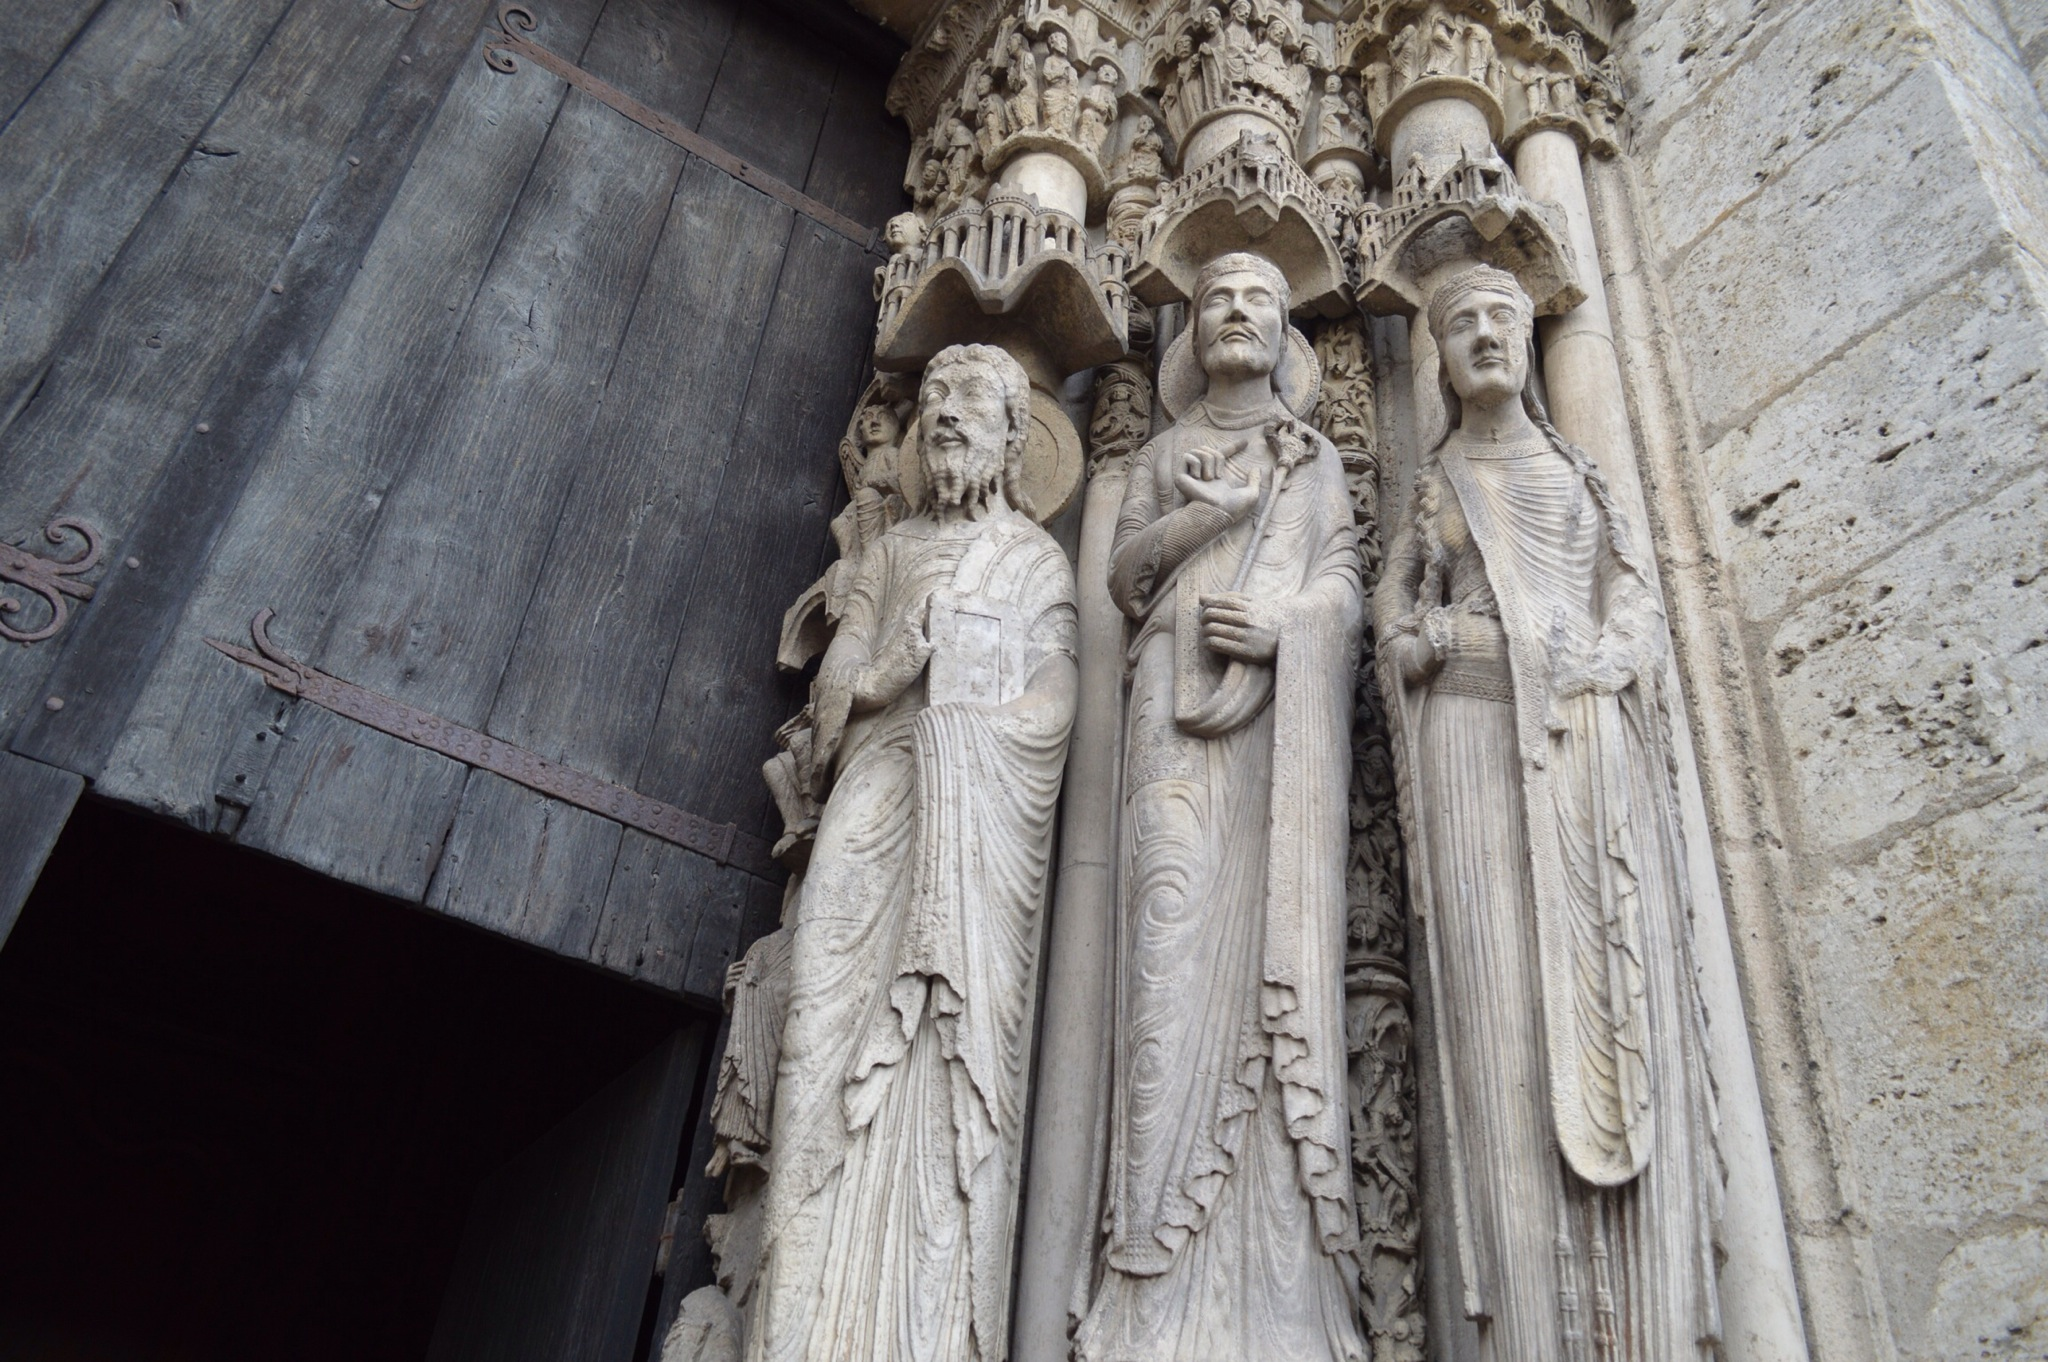 The mysterious Chartres Cathedral